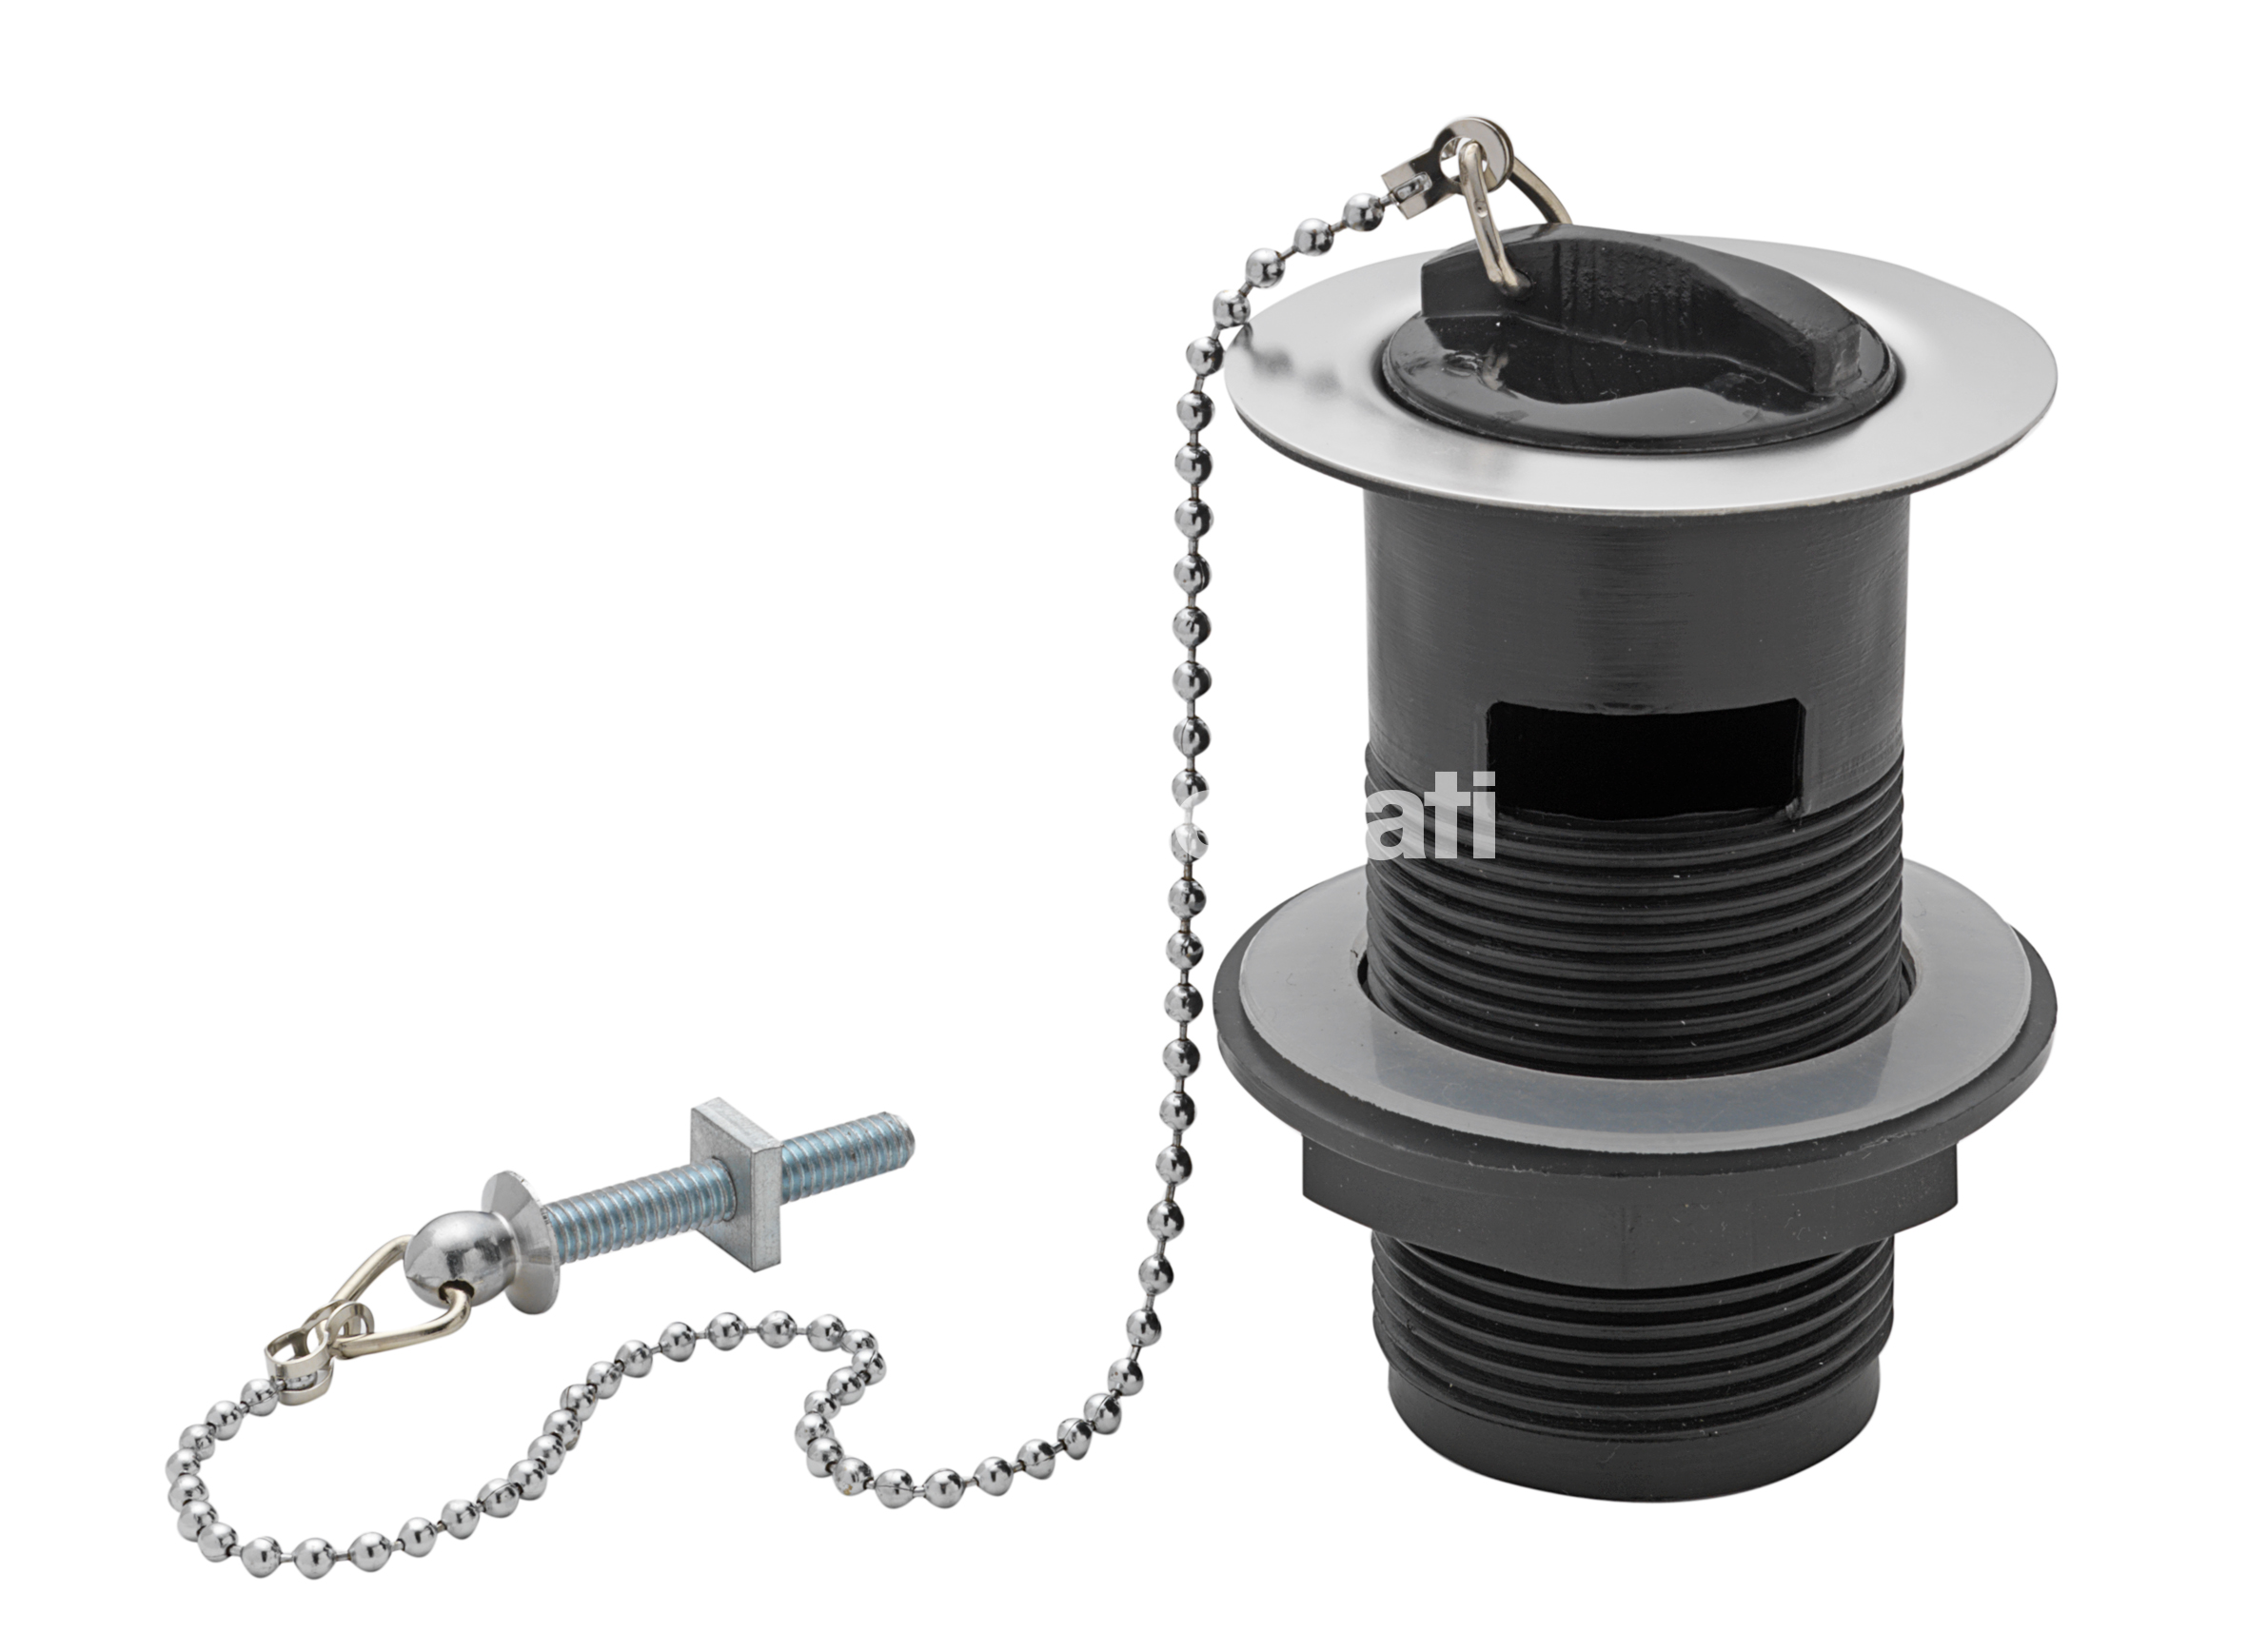 "TRE MERCATI 1 1/4"" BSP PLASTIC BASIN WASTE WITH RUBBER PLUG & BALL CHAIN - CHROME PLATED"